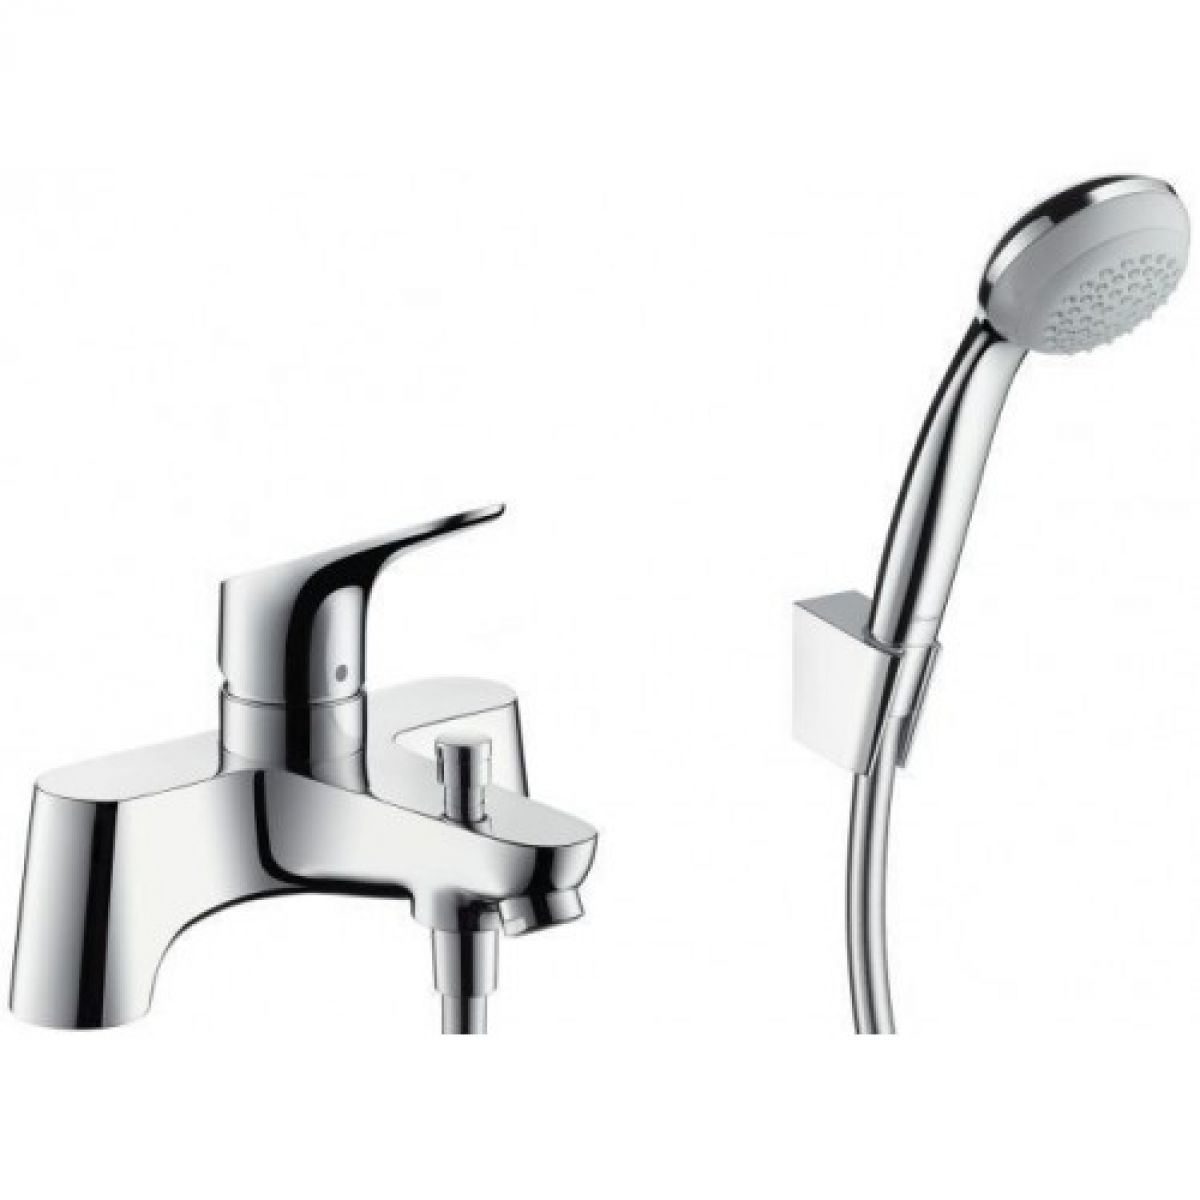 hansgrohe focus bath shower mixer tap uk bathrooms. Black Bedroom Furniture Sets. Home Design Ideas